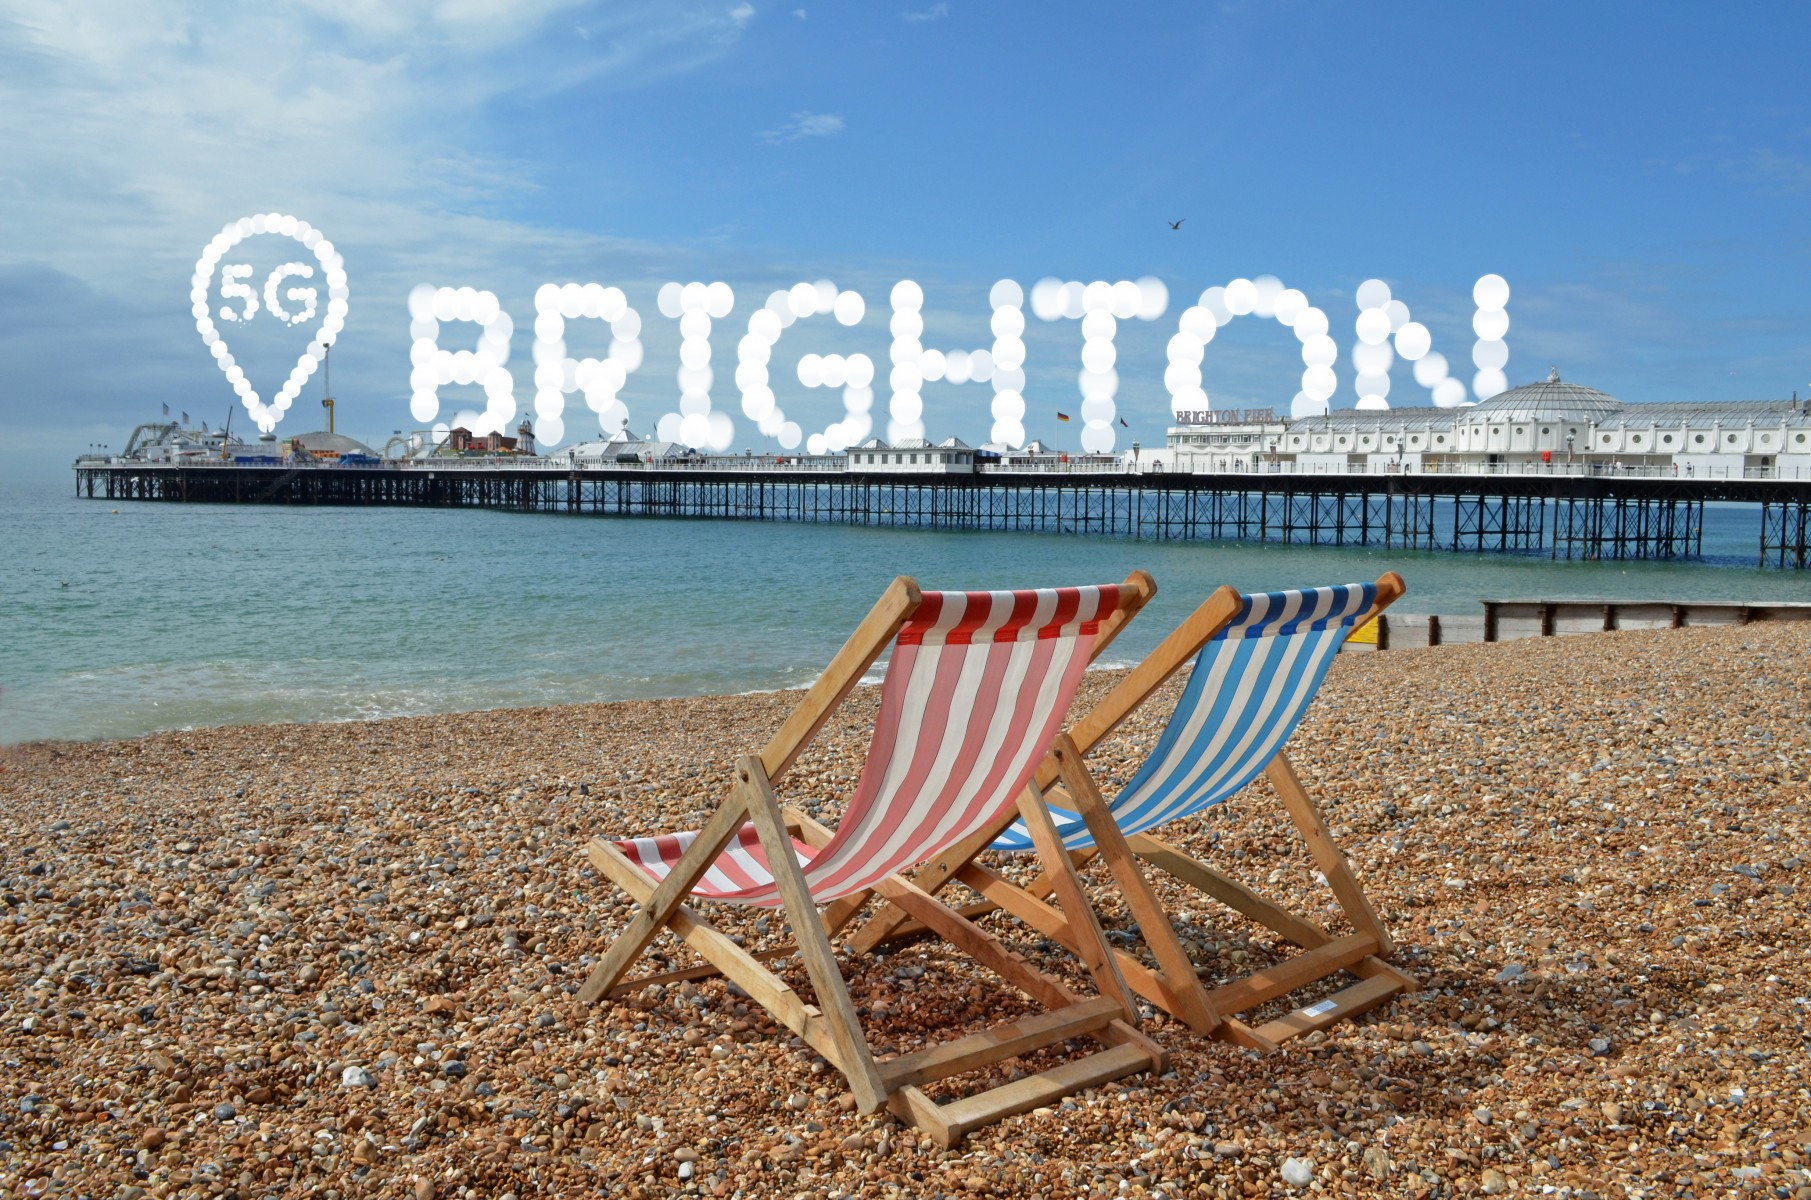 EEB_Brighton_5G_ART